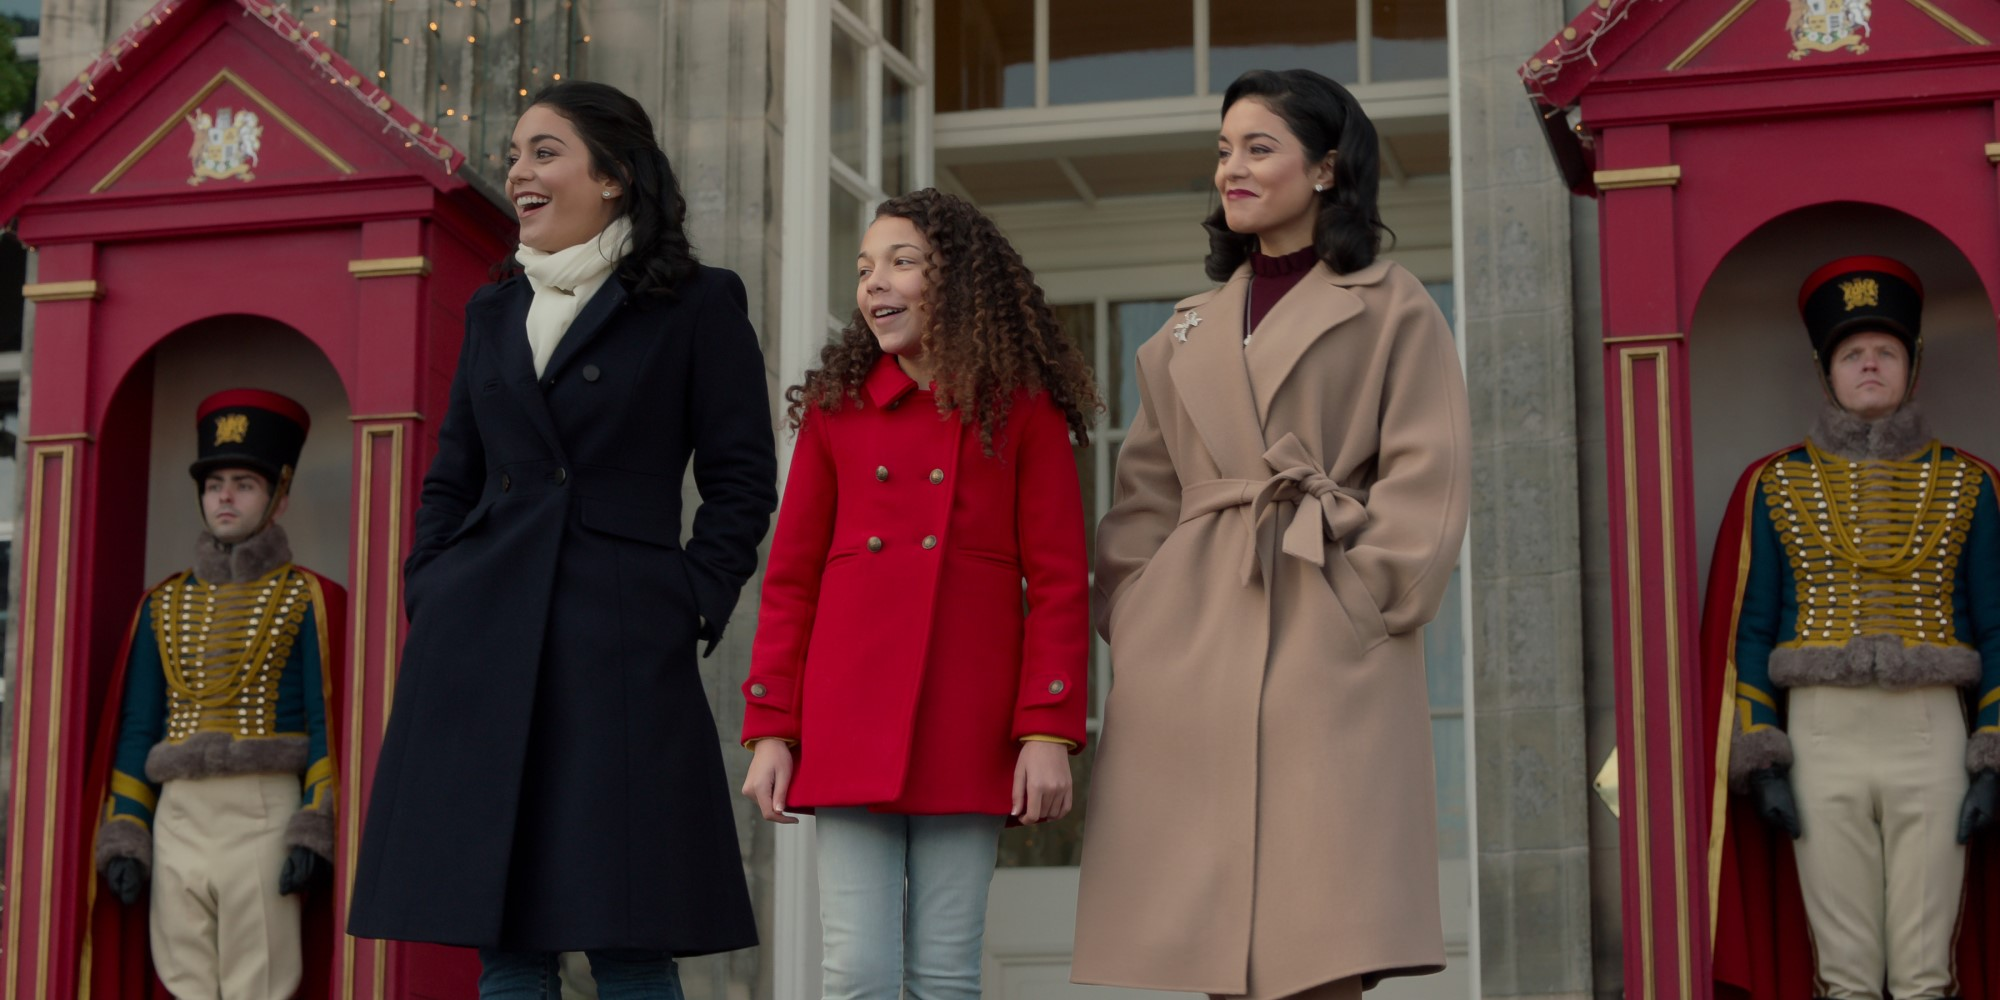 Netflix 2020 holiday slate includes The Princess Switch sequel, The Christmas Chronicles 2 & more 21